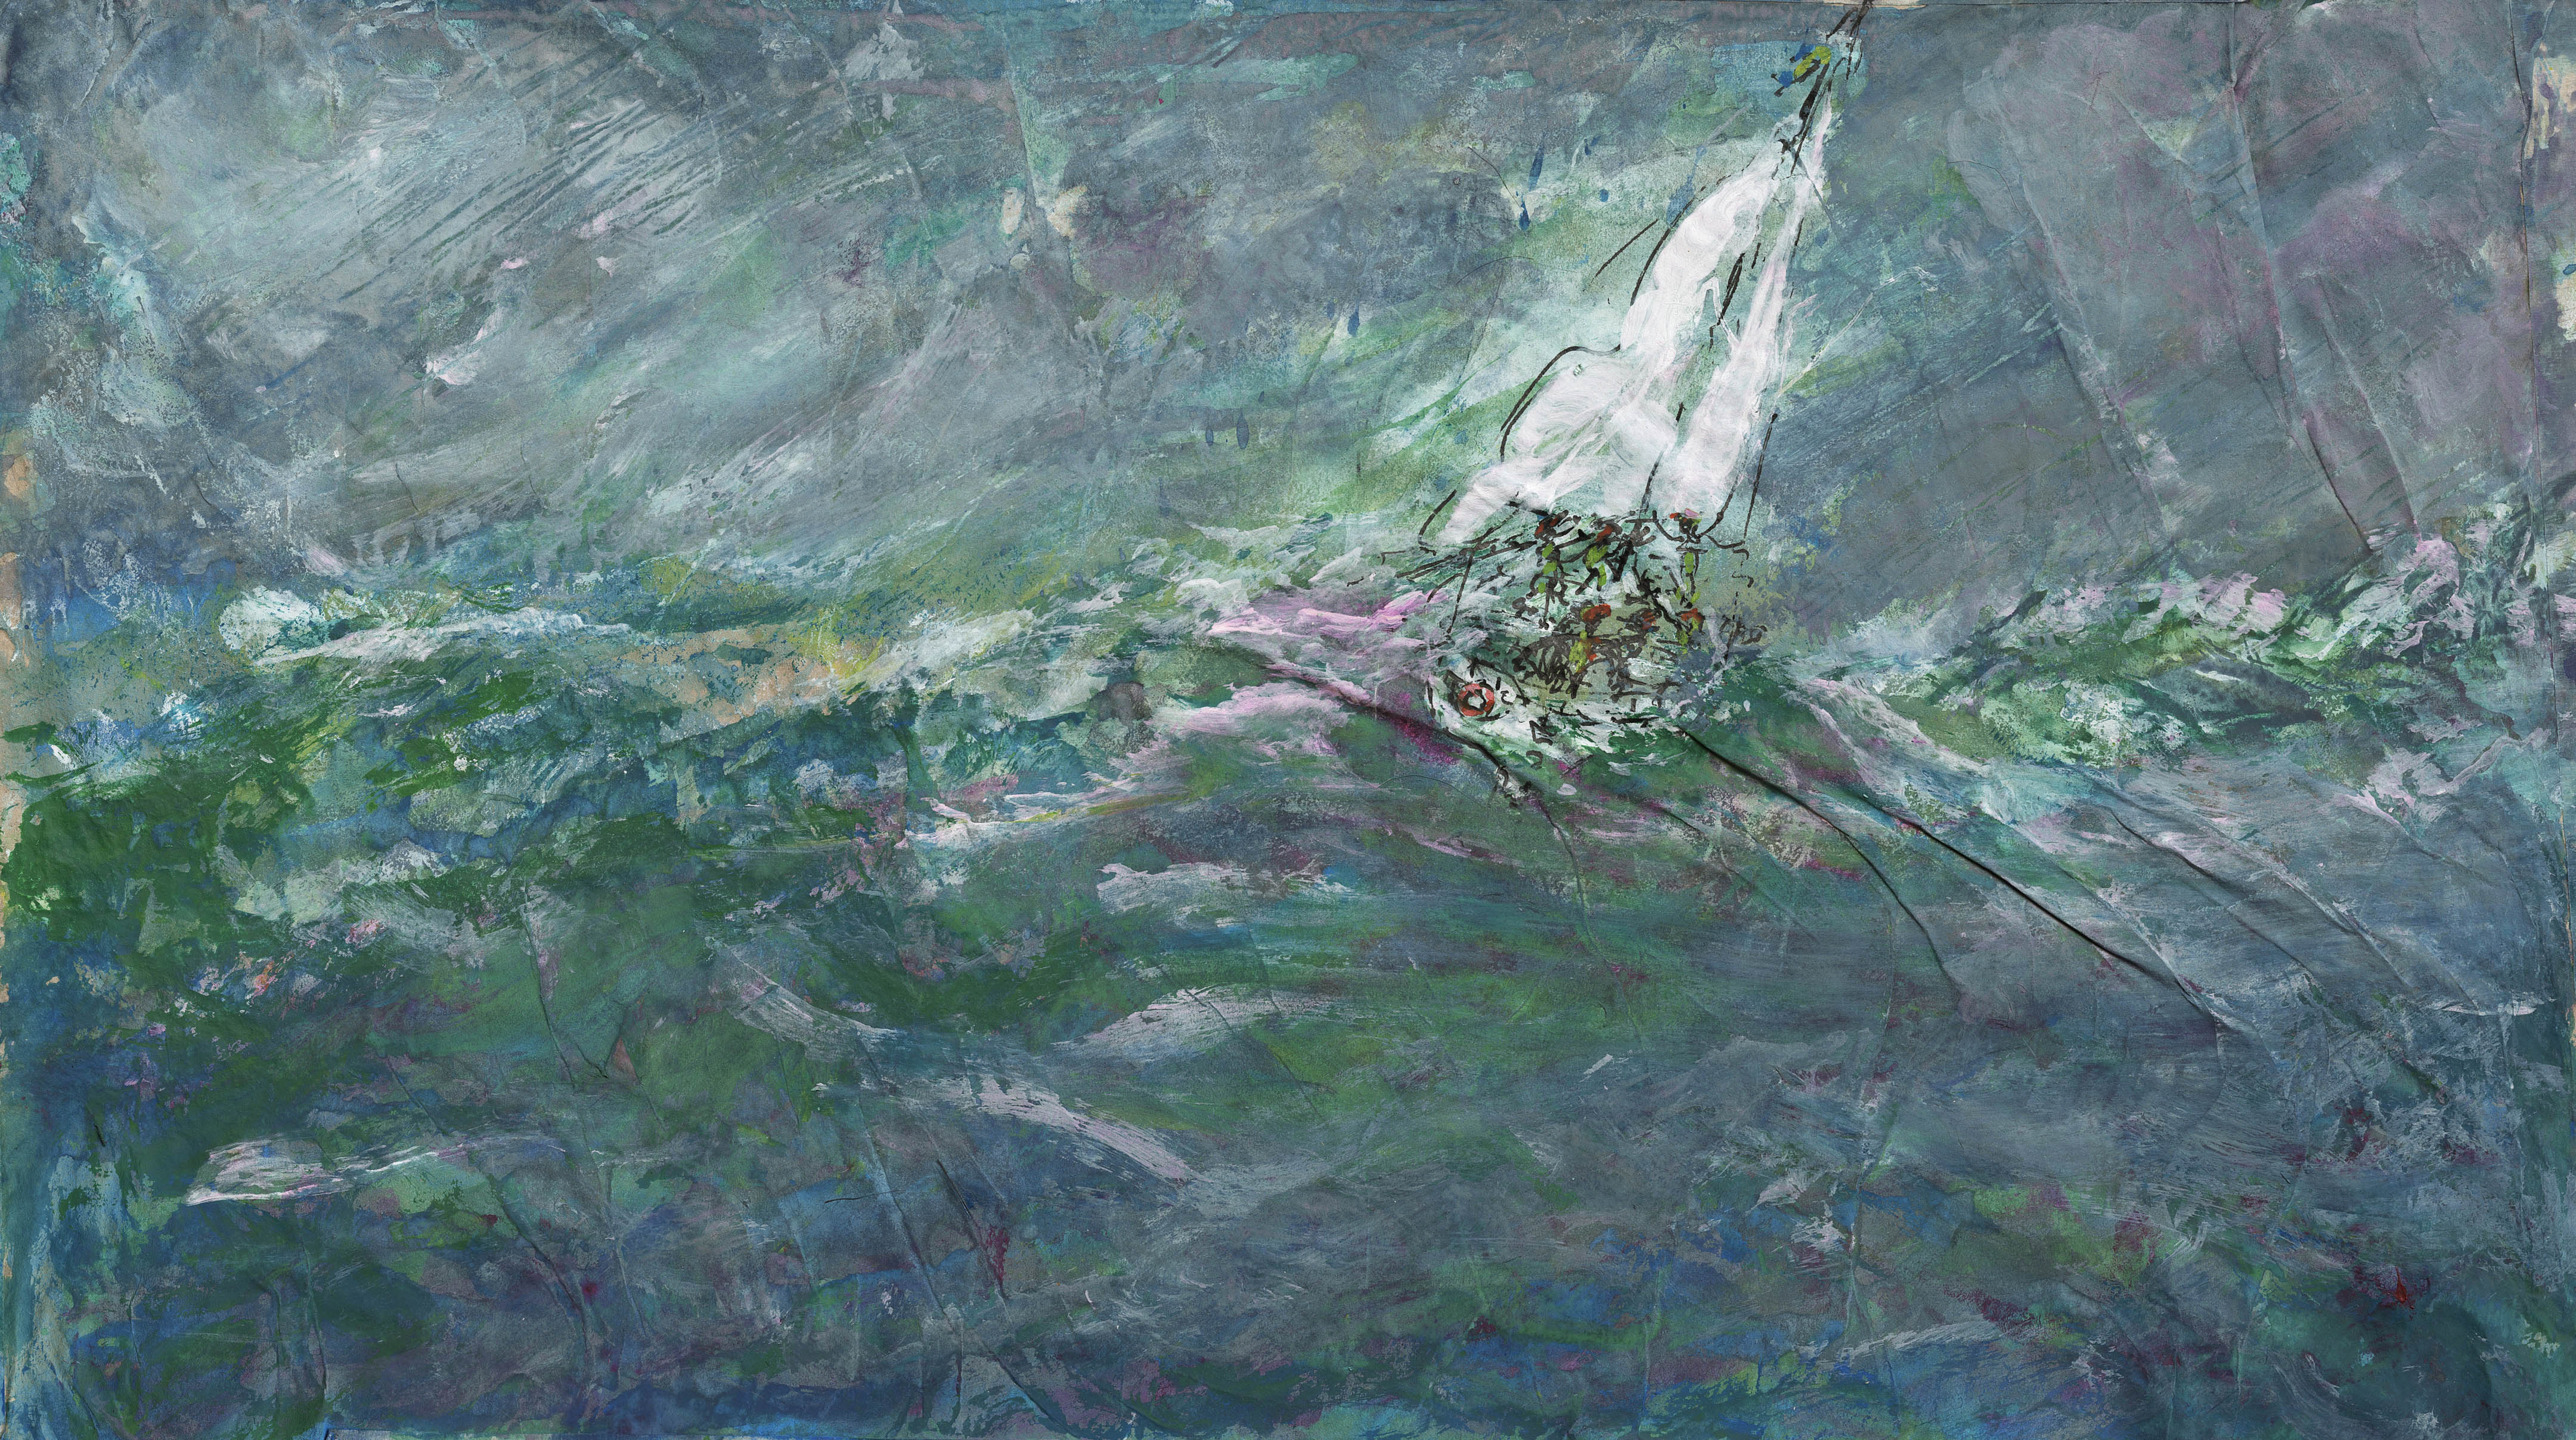 1createe - 96 Yacht Crumpeld Squall by Patricia Thompson